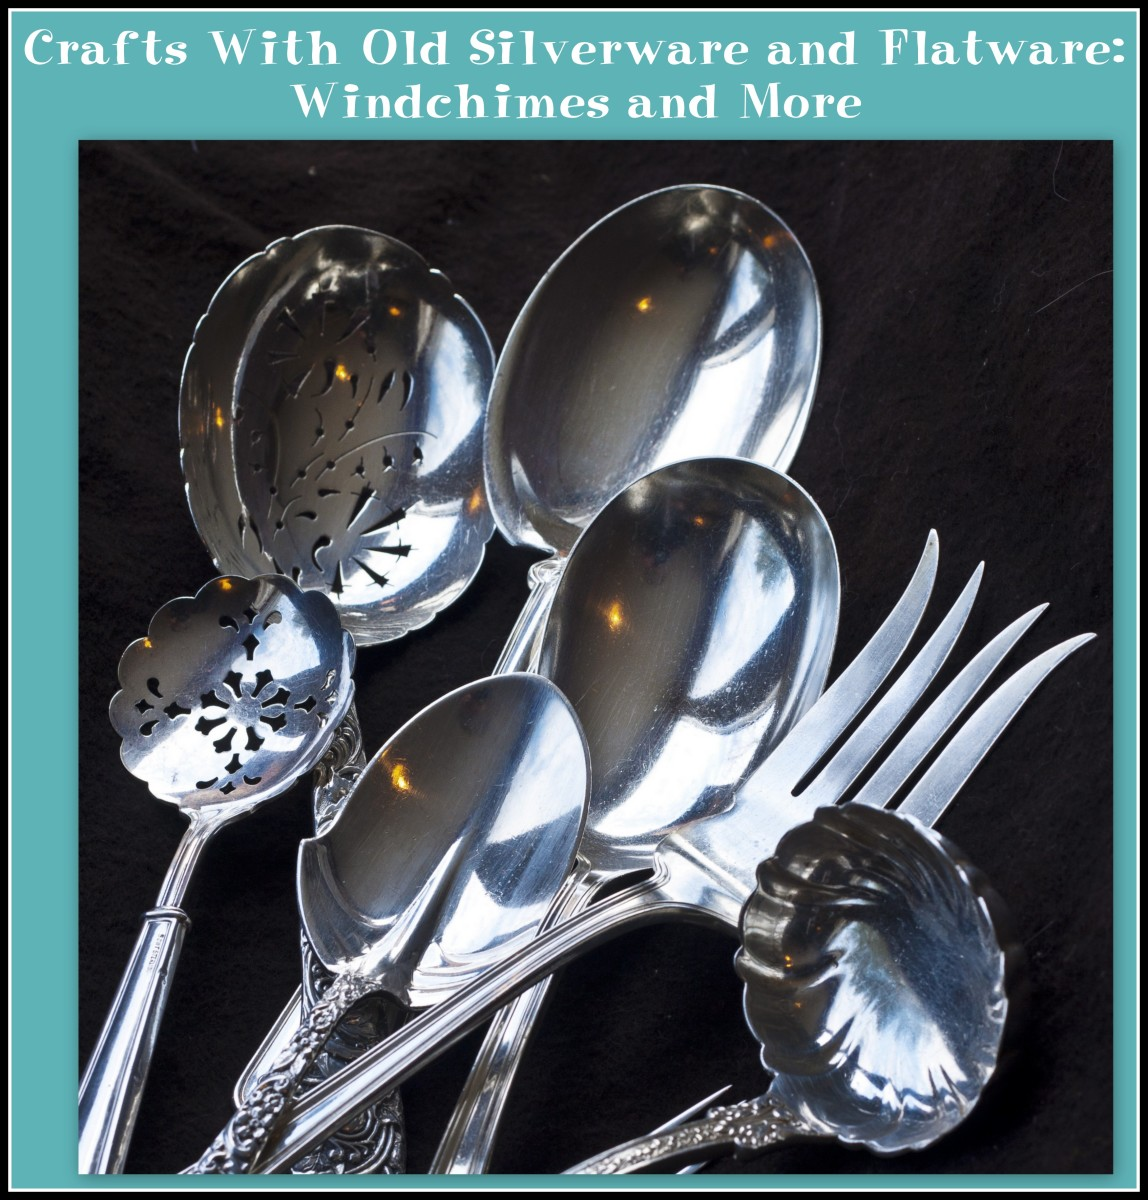 Crafts With Old Silverware and Flatware: Windchimes and More